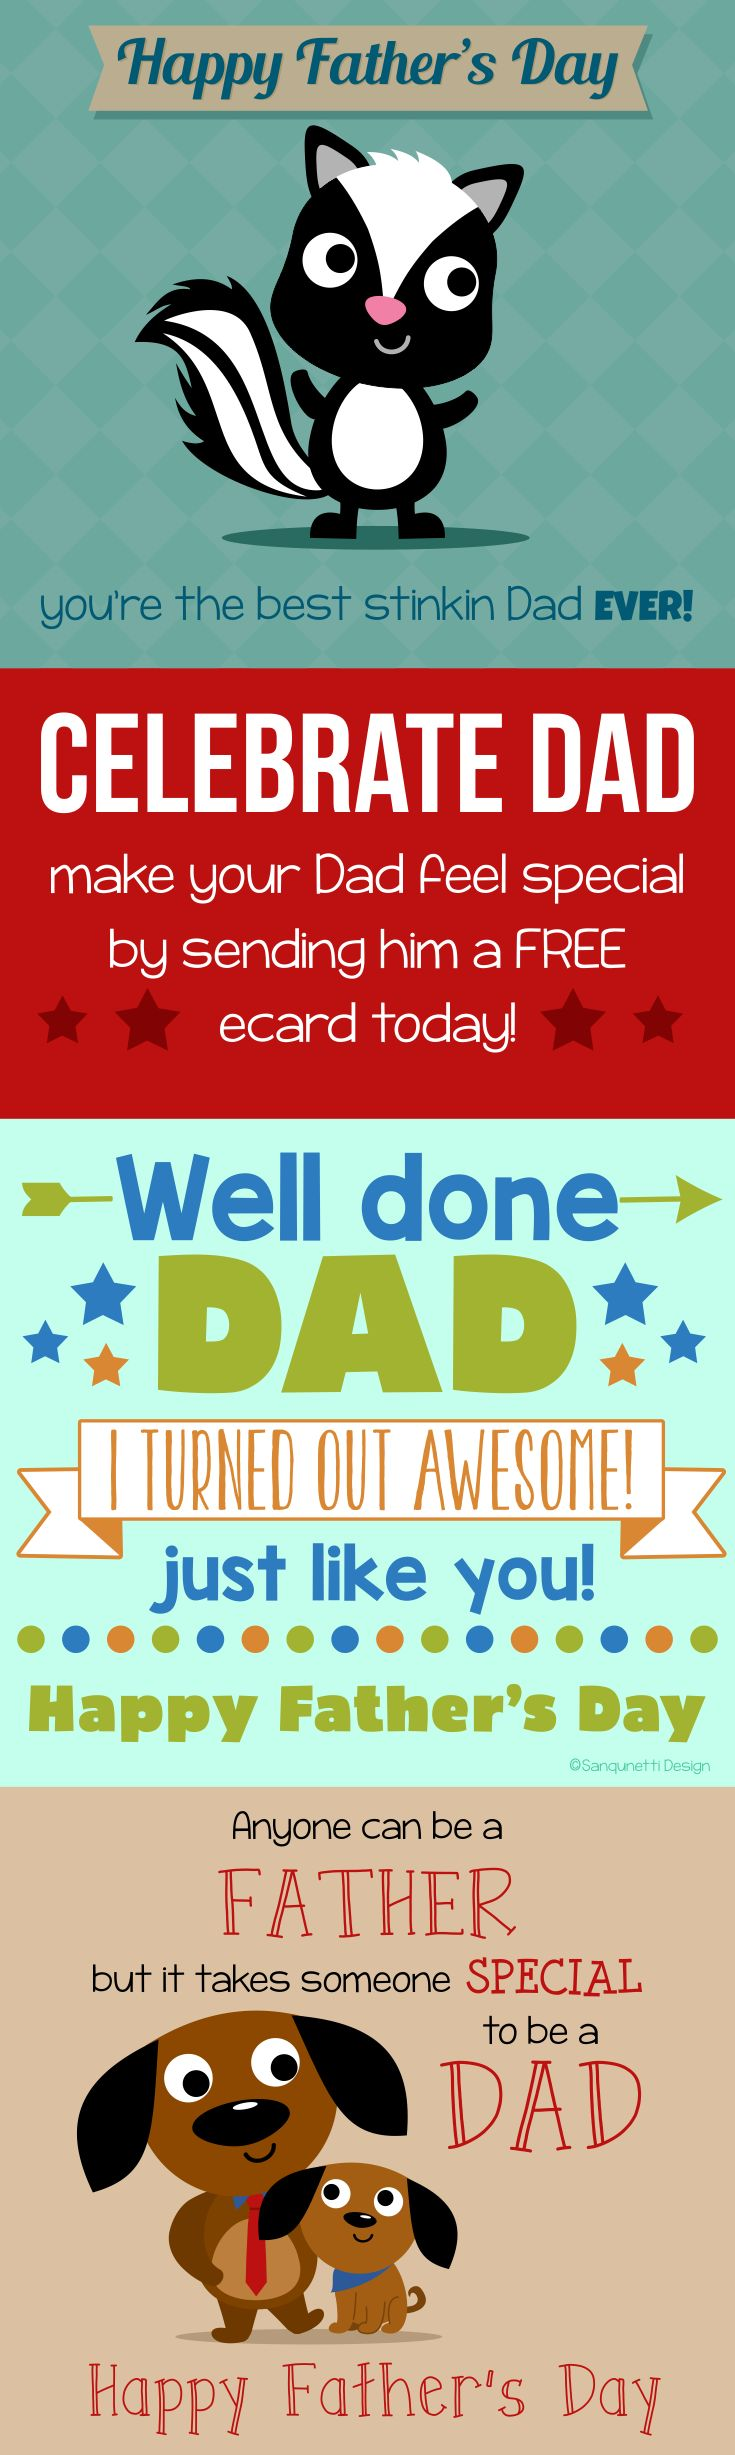 Celebrate Dad this Father's Day by sending him a free ecard greeting card!